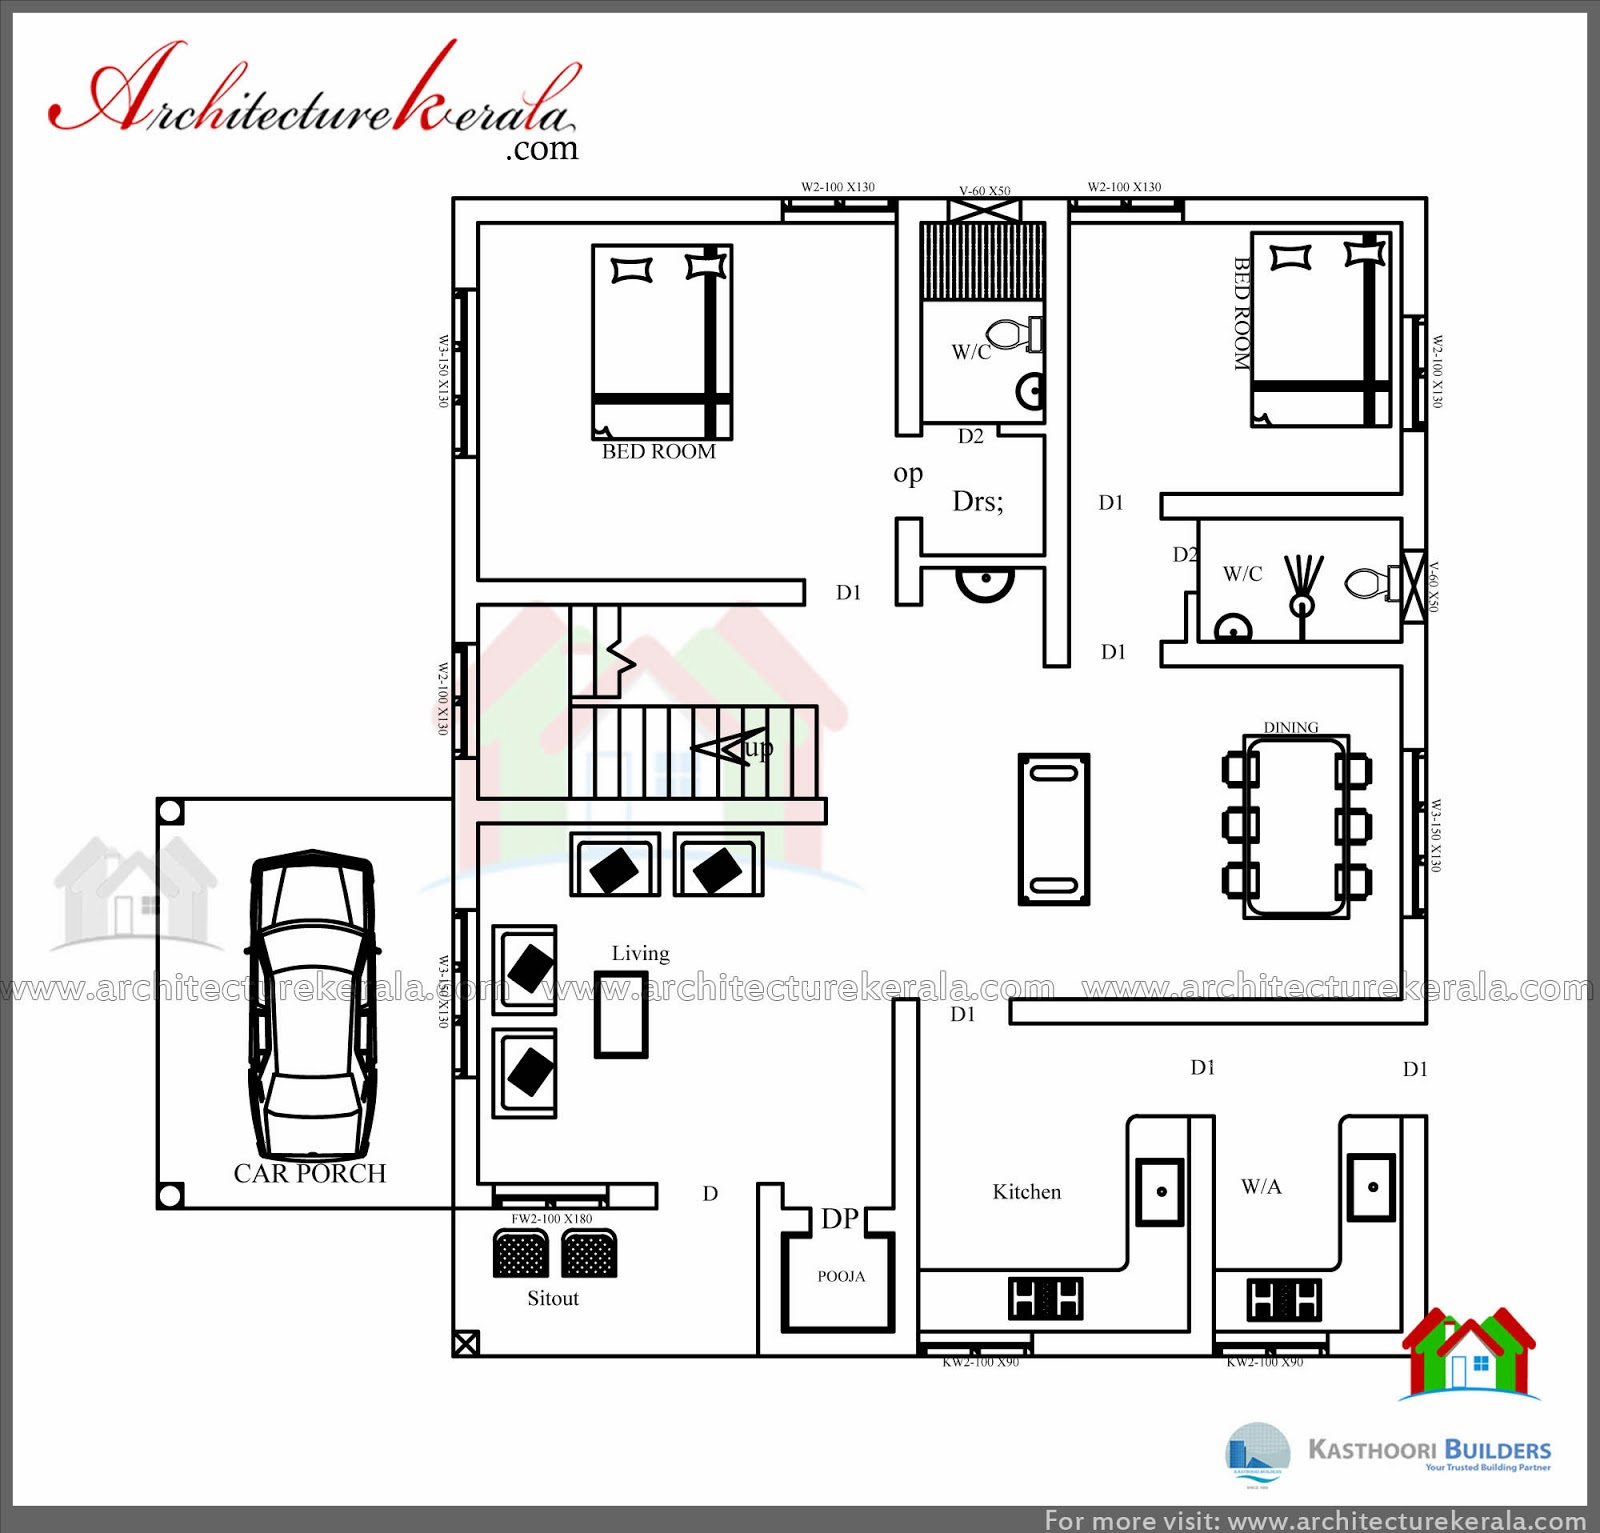 Low cost 3 bedroom kerala house plan with elevation free for 3 bedroom house plan kerala